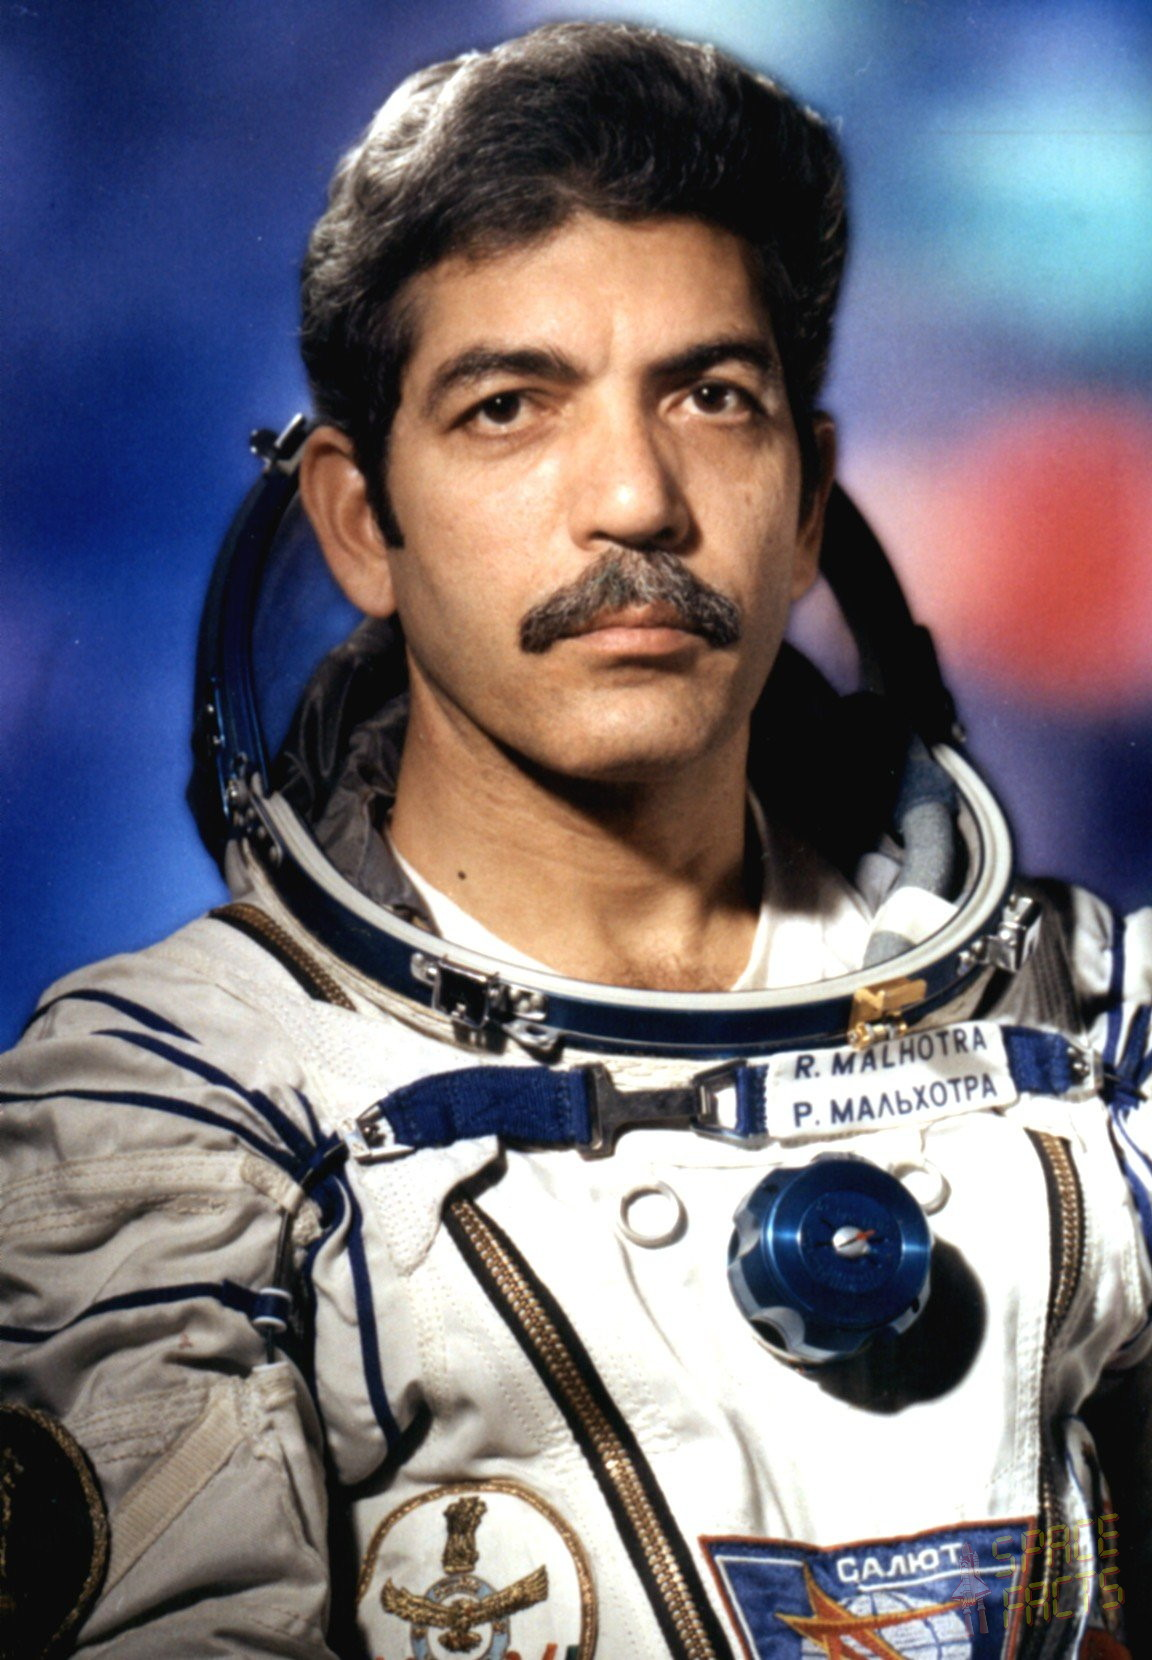 indian astronaut in space - photo #3